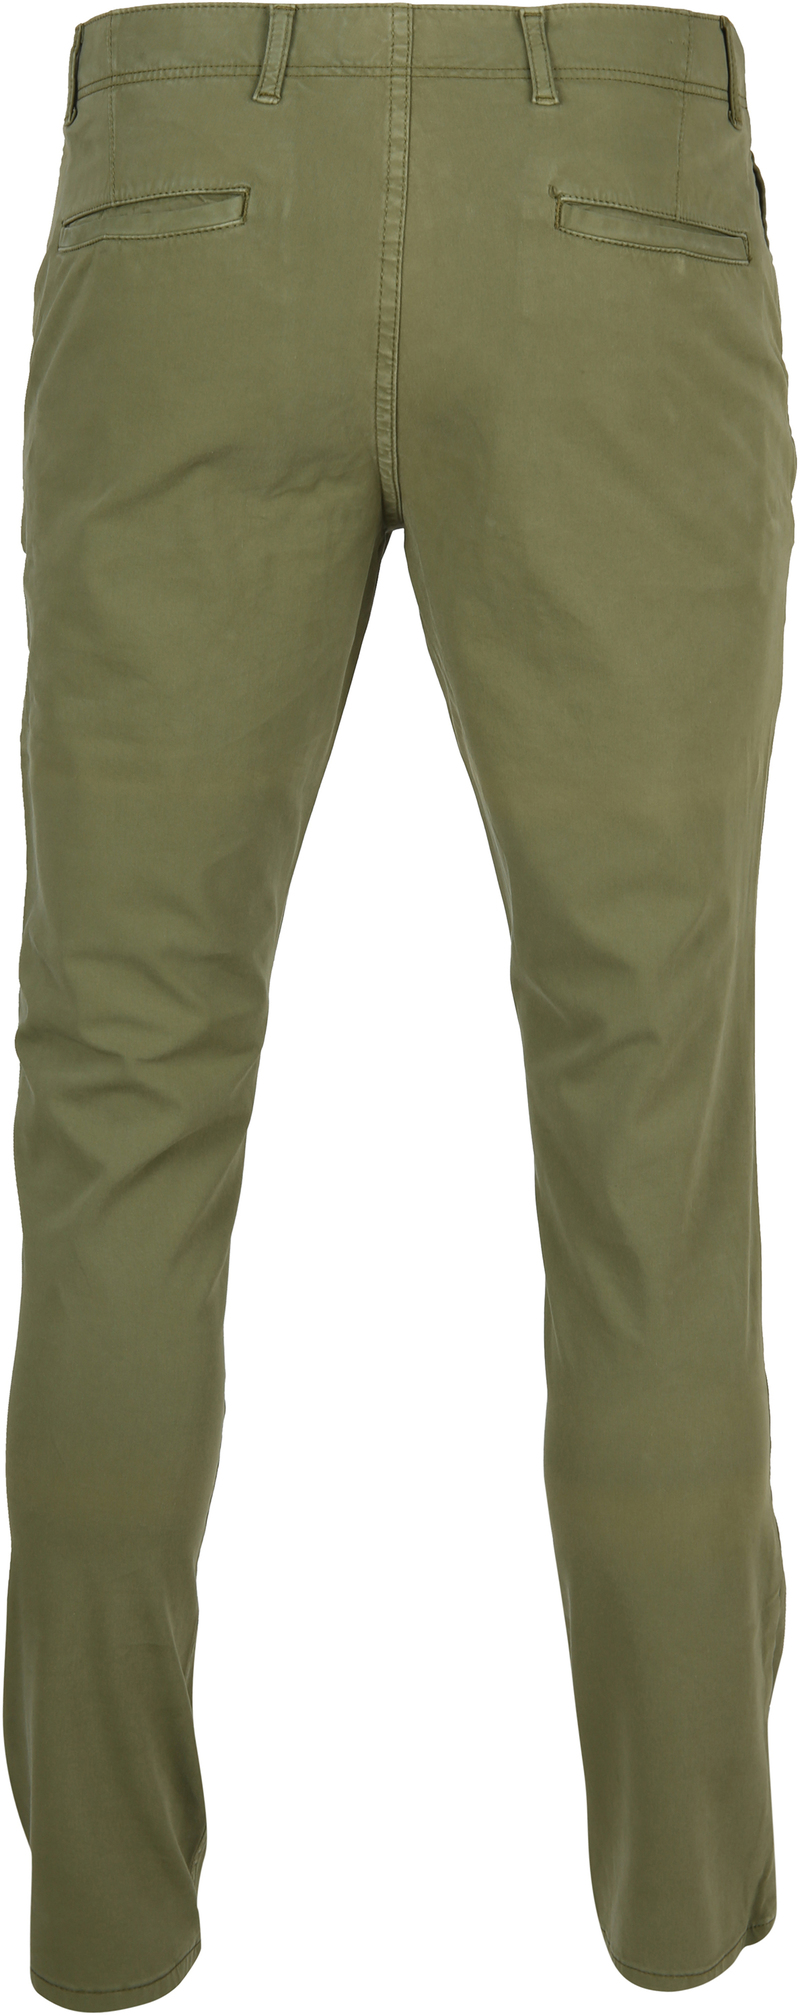 Suitable Milton Skinny-Fit Chino Groen foto 4